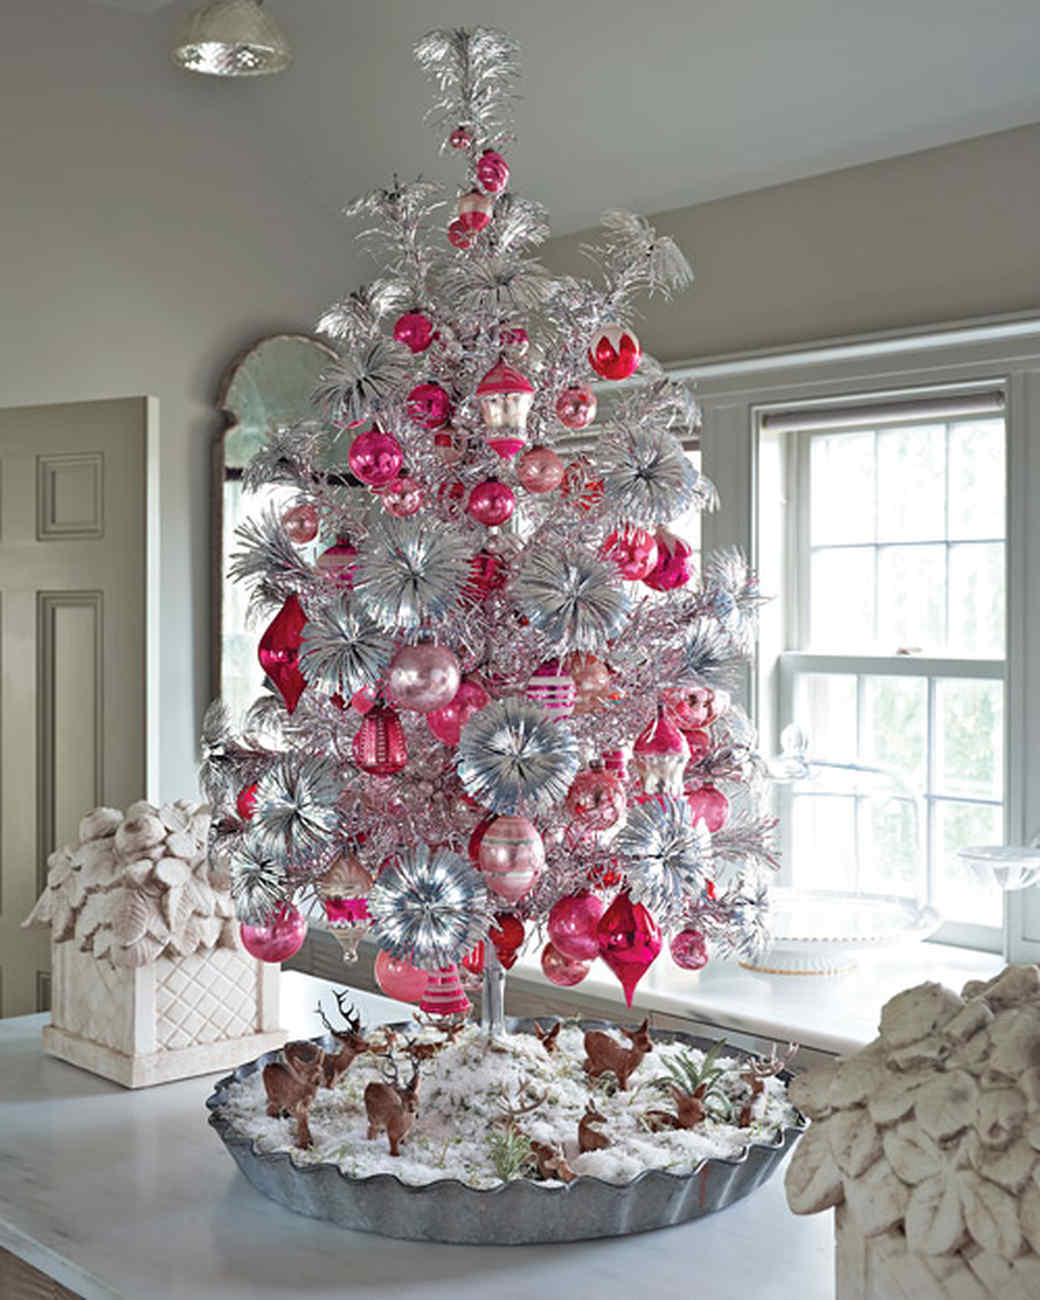 28 creative christmas tree decorating ideas martha stewart - Modern Christmas Tree Decorations